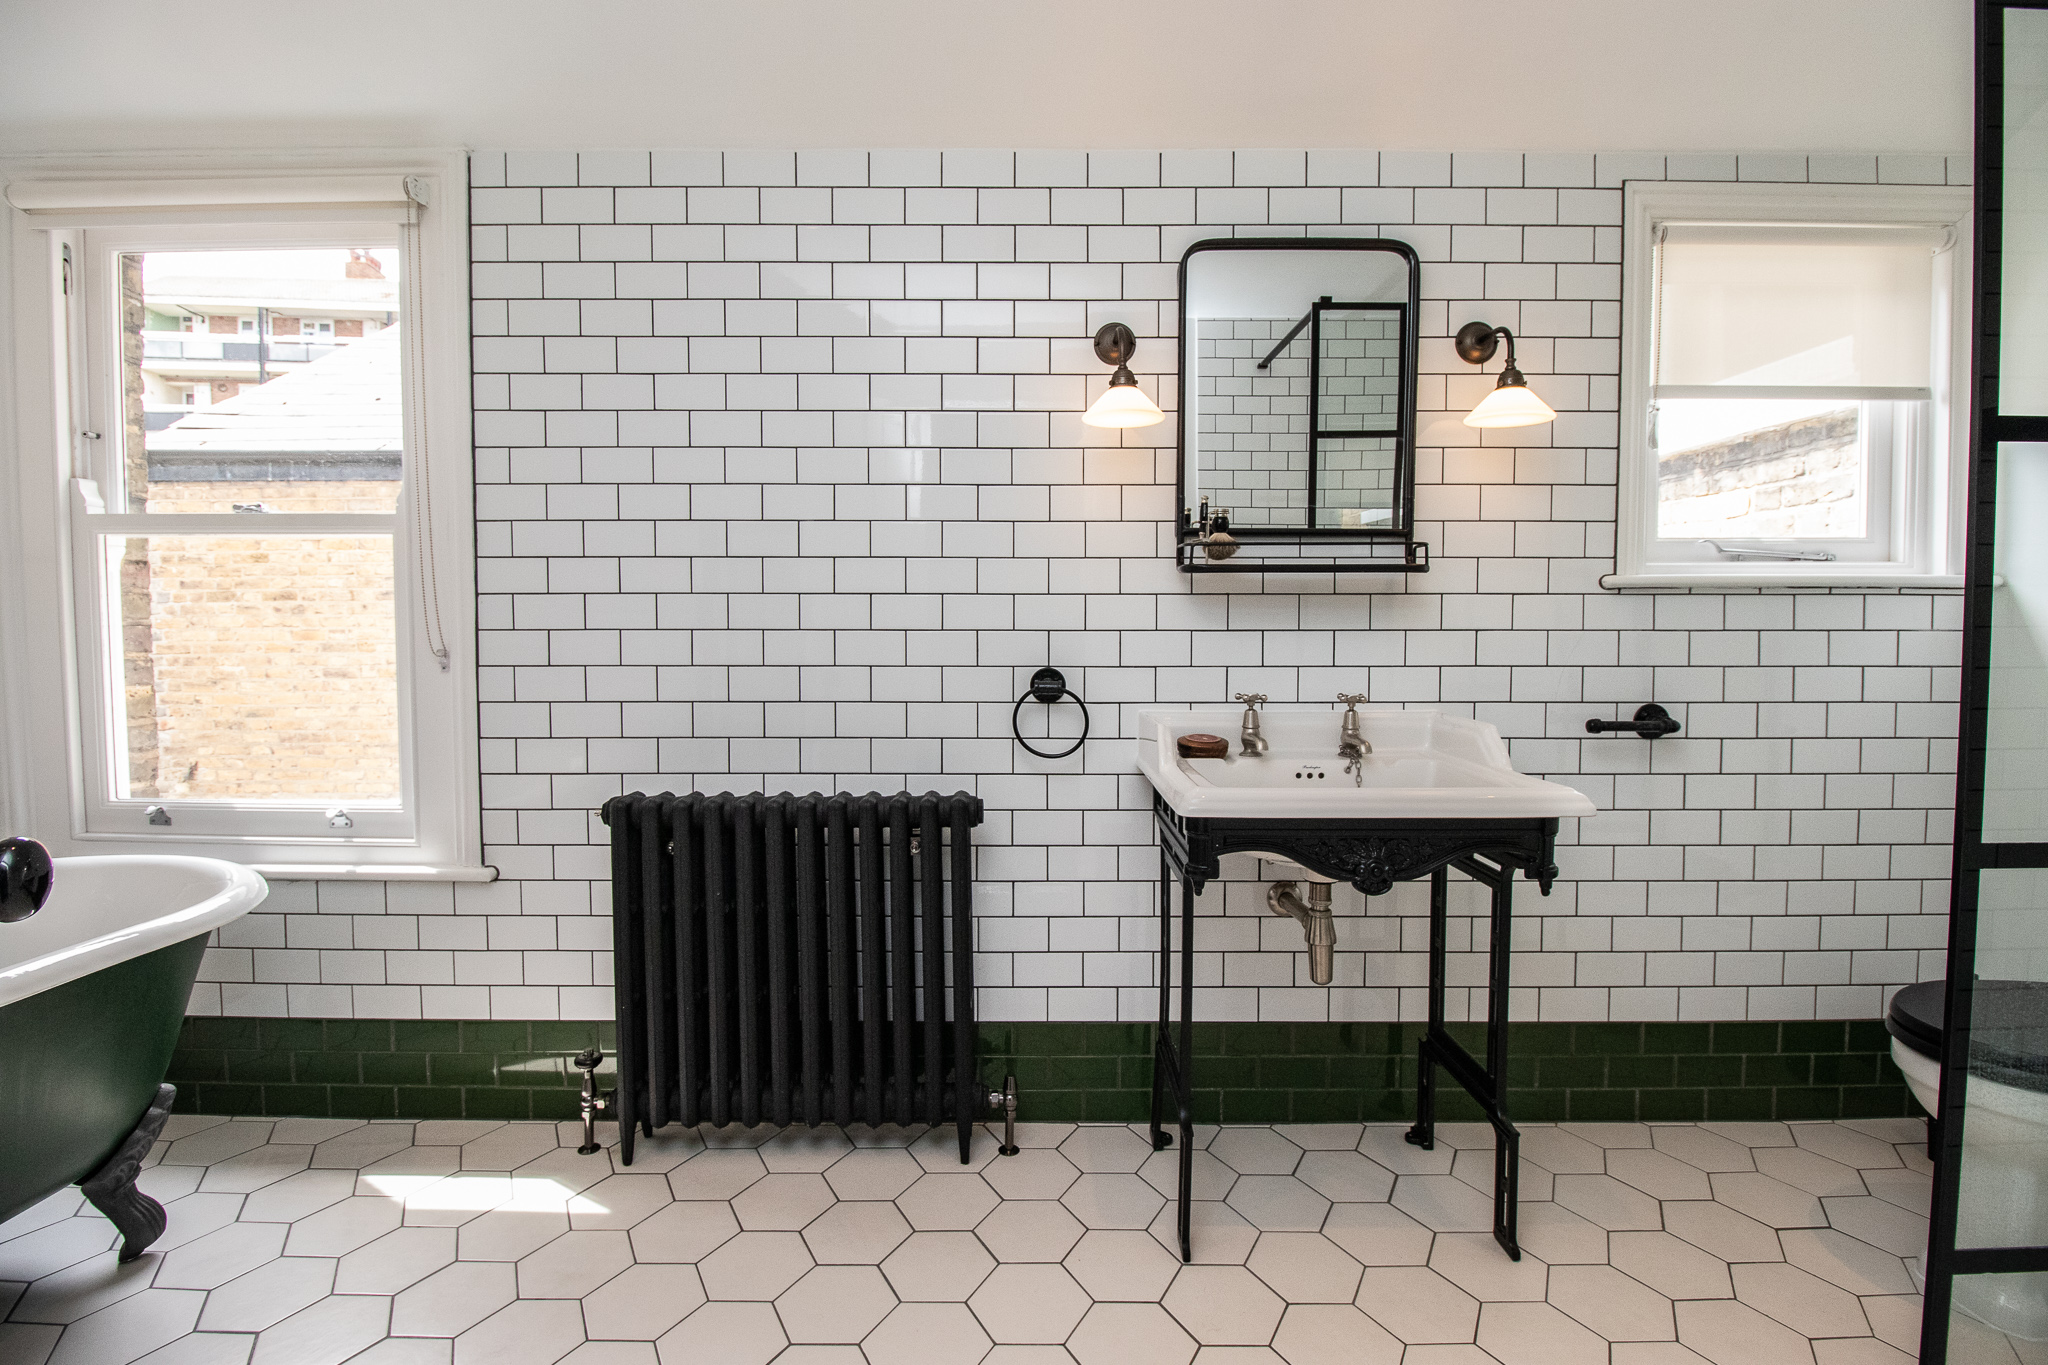 VICTORIAN BATHROOM, IRON SINK, IRON RADIATOR, BLACK RADIATOR, CLAW FOOT BATH TUB.jpg